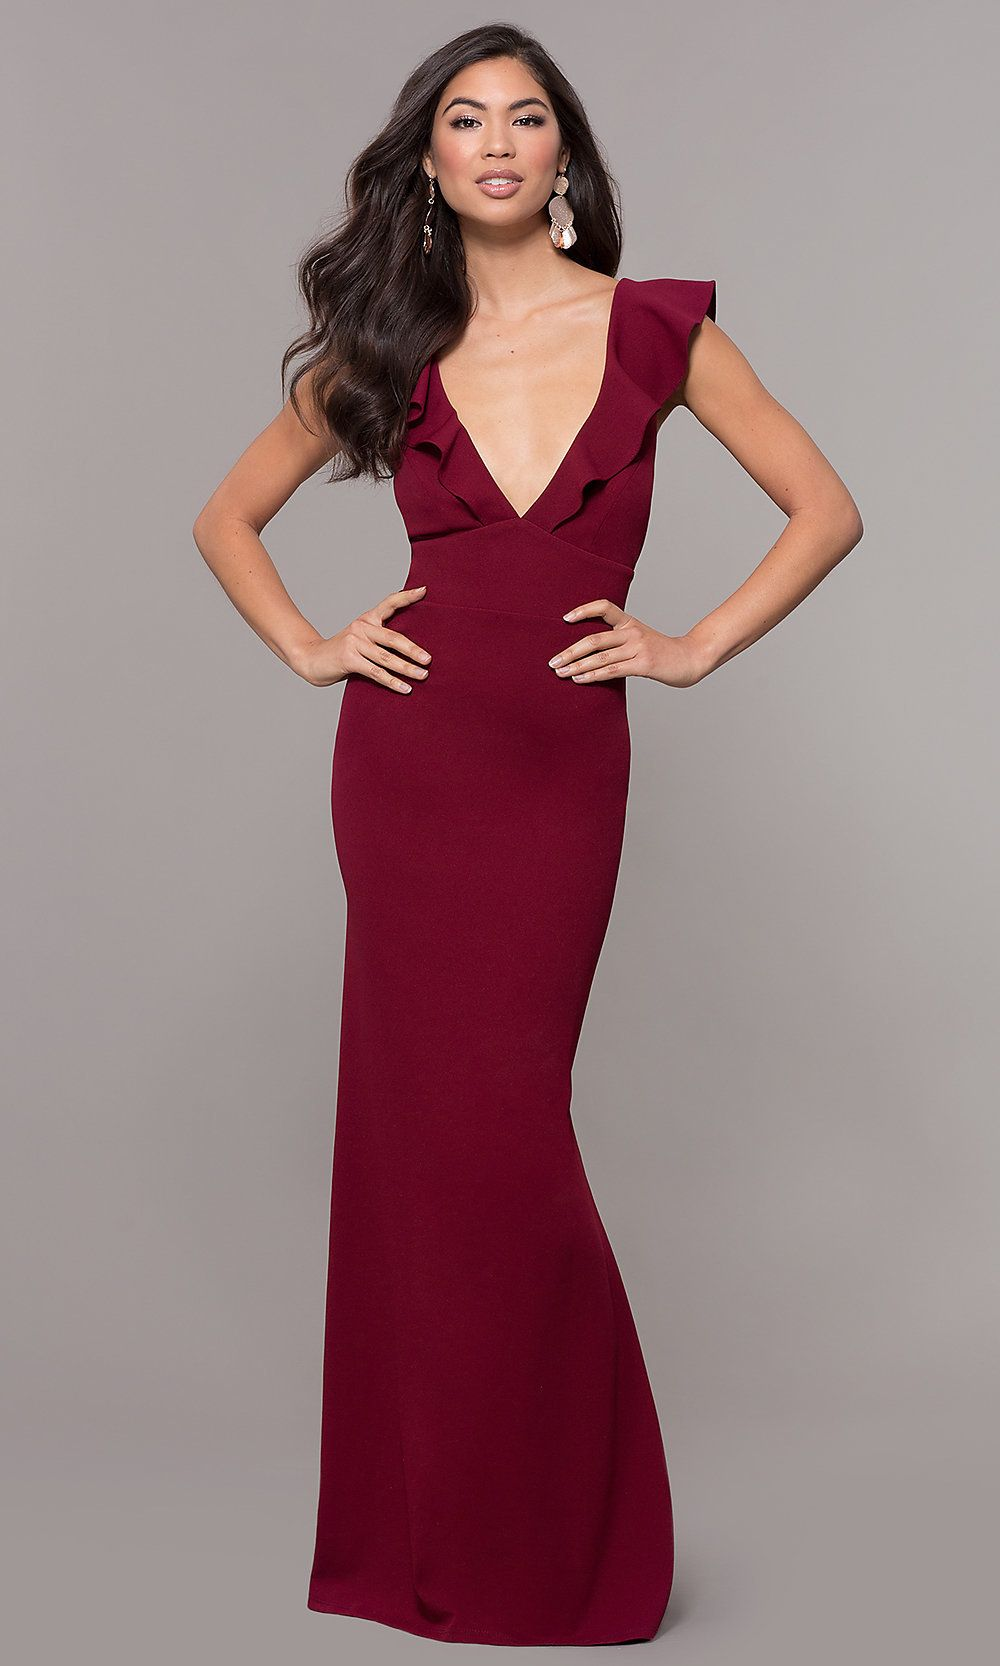 Ruffle Trimmed Wine Red V Neck Prom Dress Ruffle Prom Dress Dresses V Neck Prom Dresses [ 1666 x 1000 Pixel ]